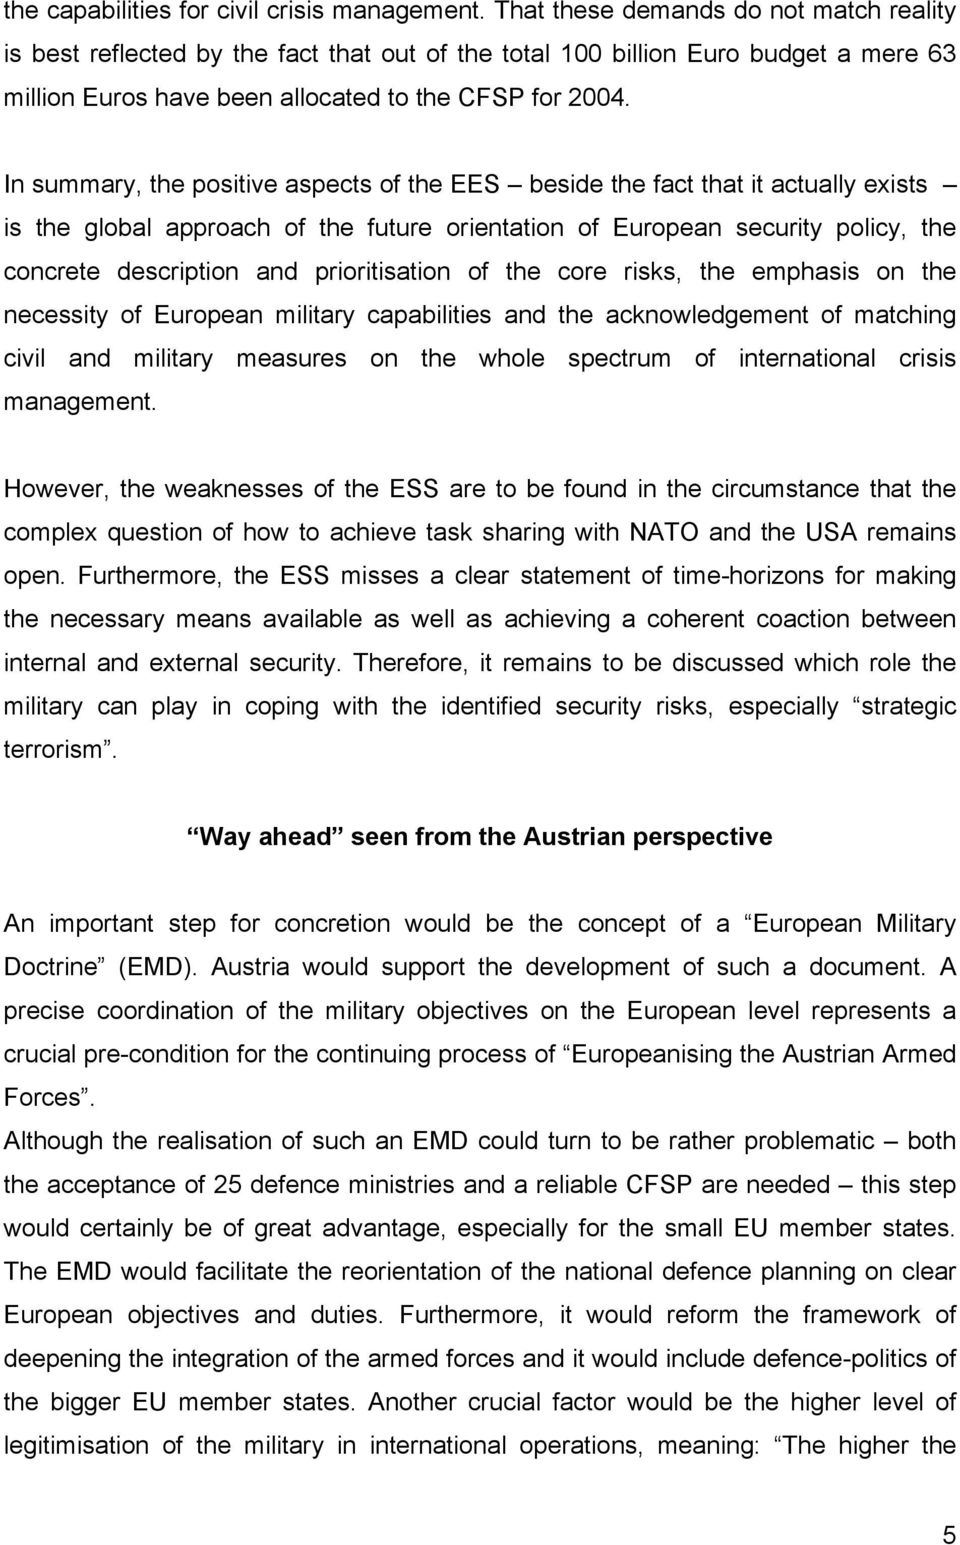 In summary, the positive aspects of the EES beside the fact that it actually exists is the global approach of the future orientation of European security policy, the concrete description and